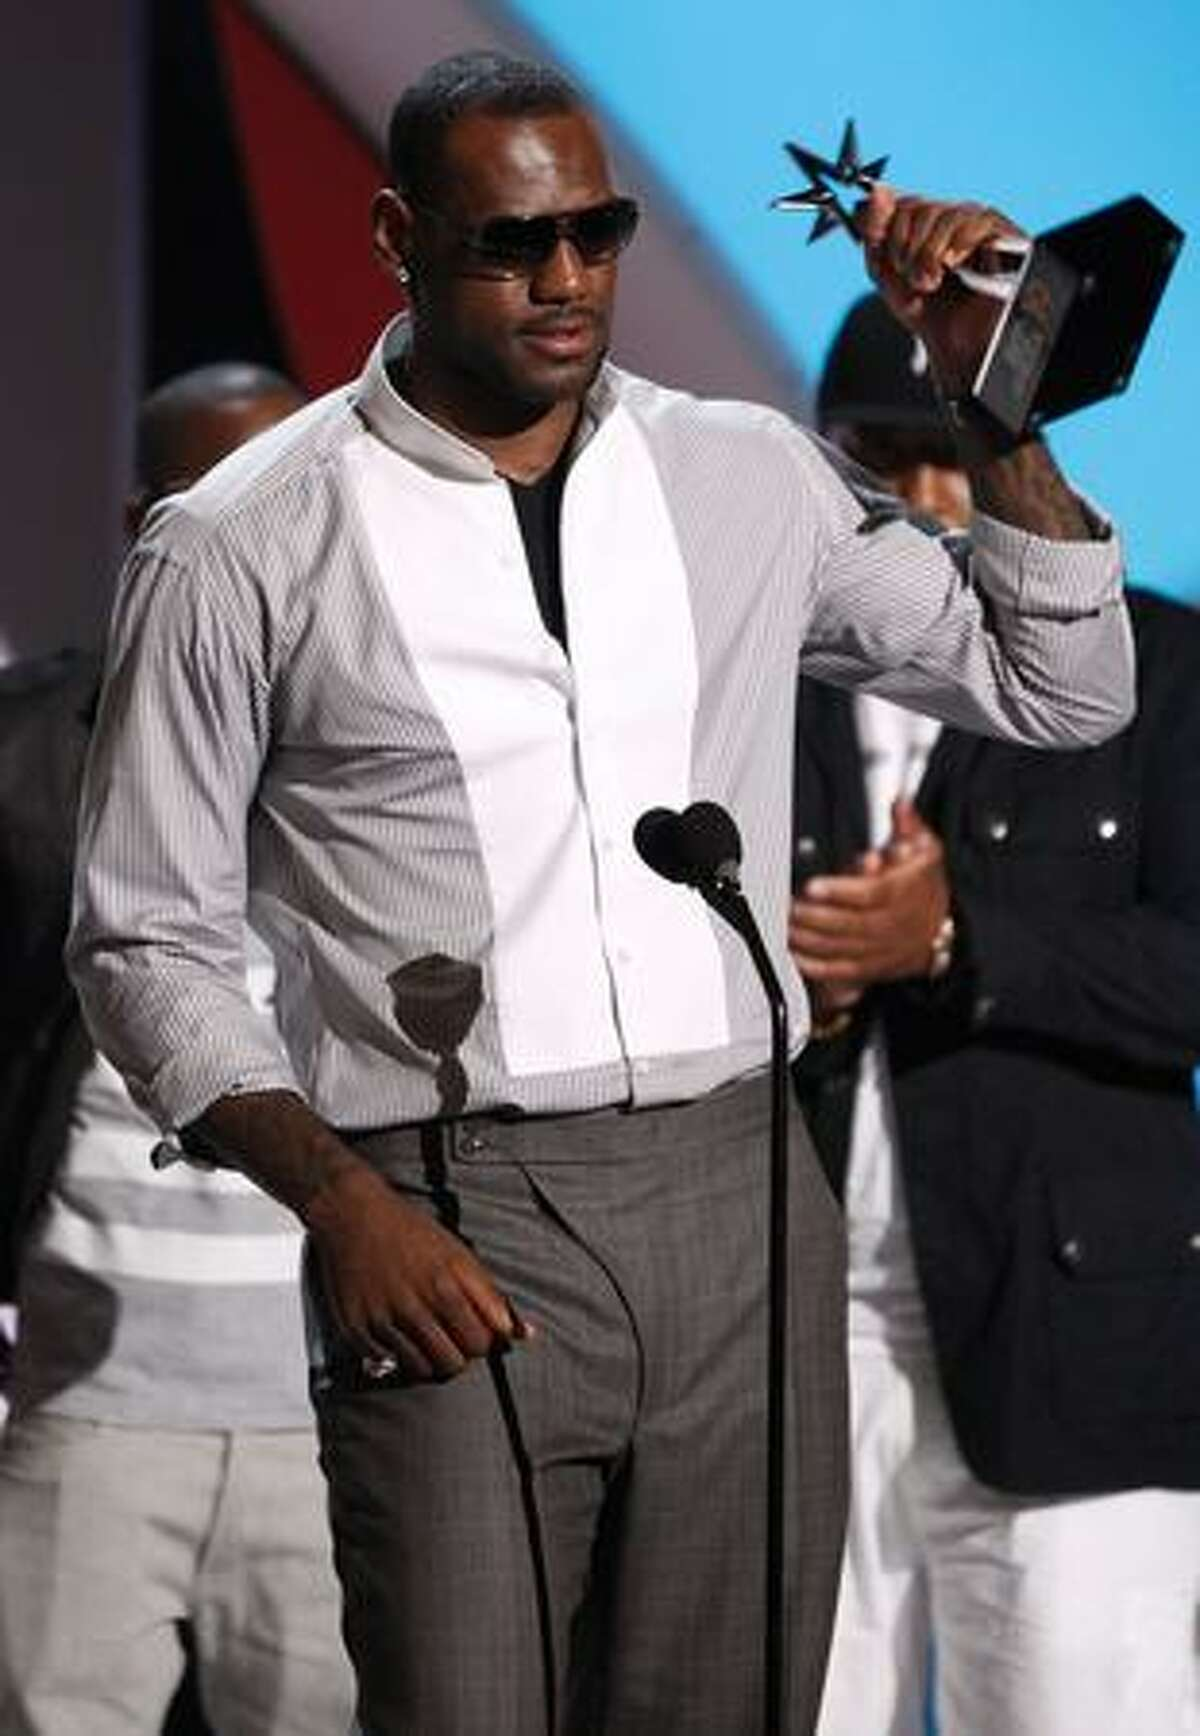 NBA player LeBron James of the Cleveland Cavaliers accepts the BET Award for Best Male Athlete on stage during the 2009 BET Awards held at the Shrine Auditorium on Sunday in Los Angeles, California.